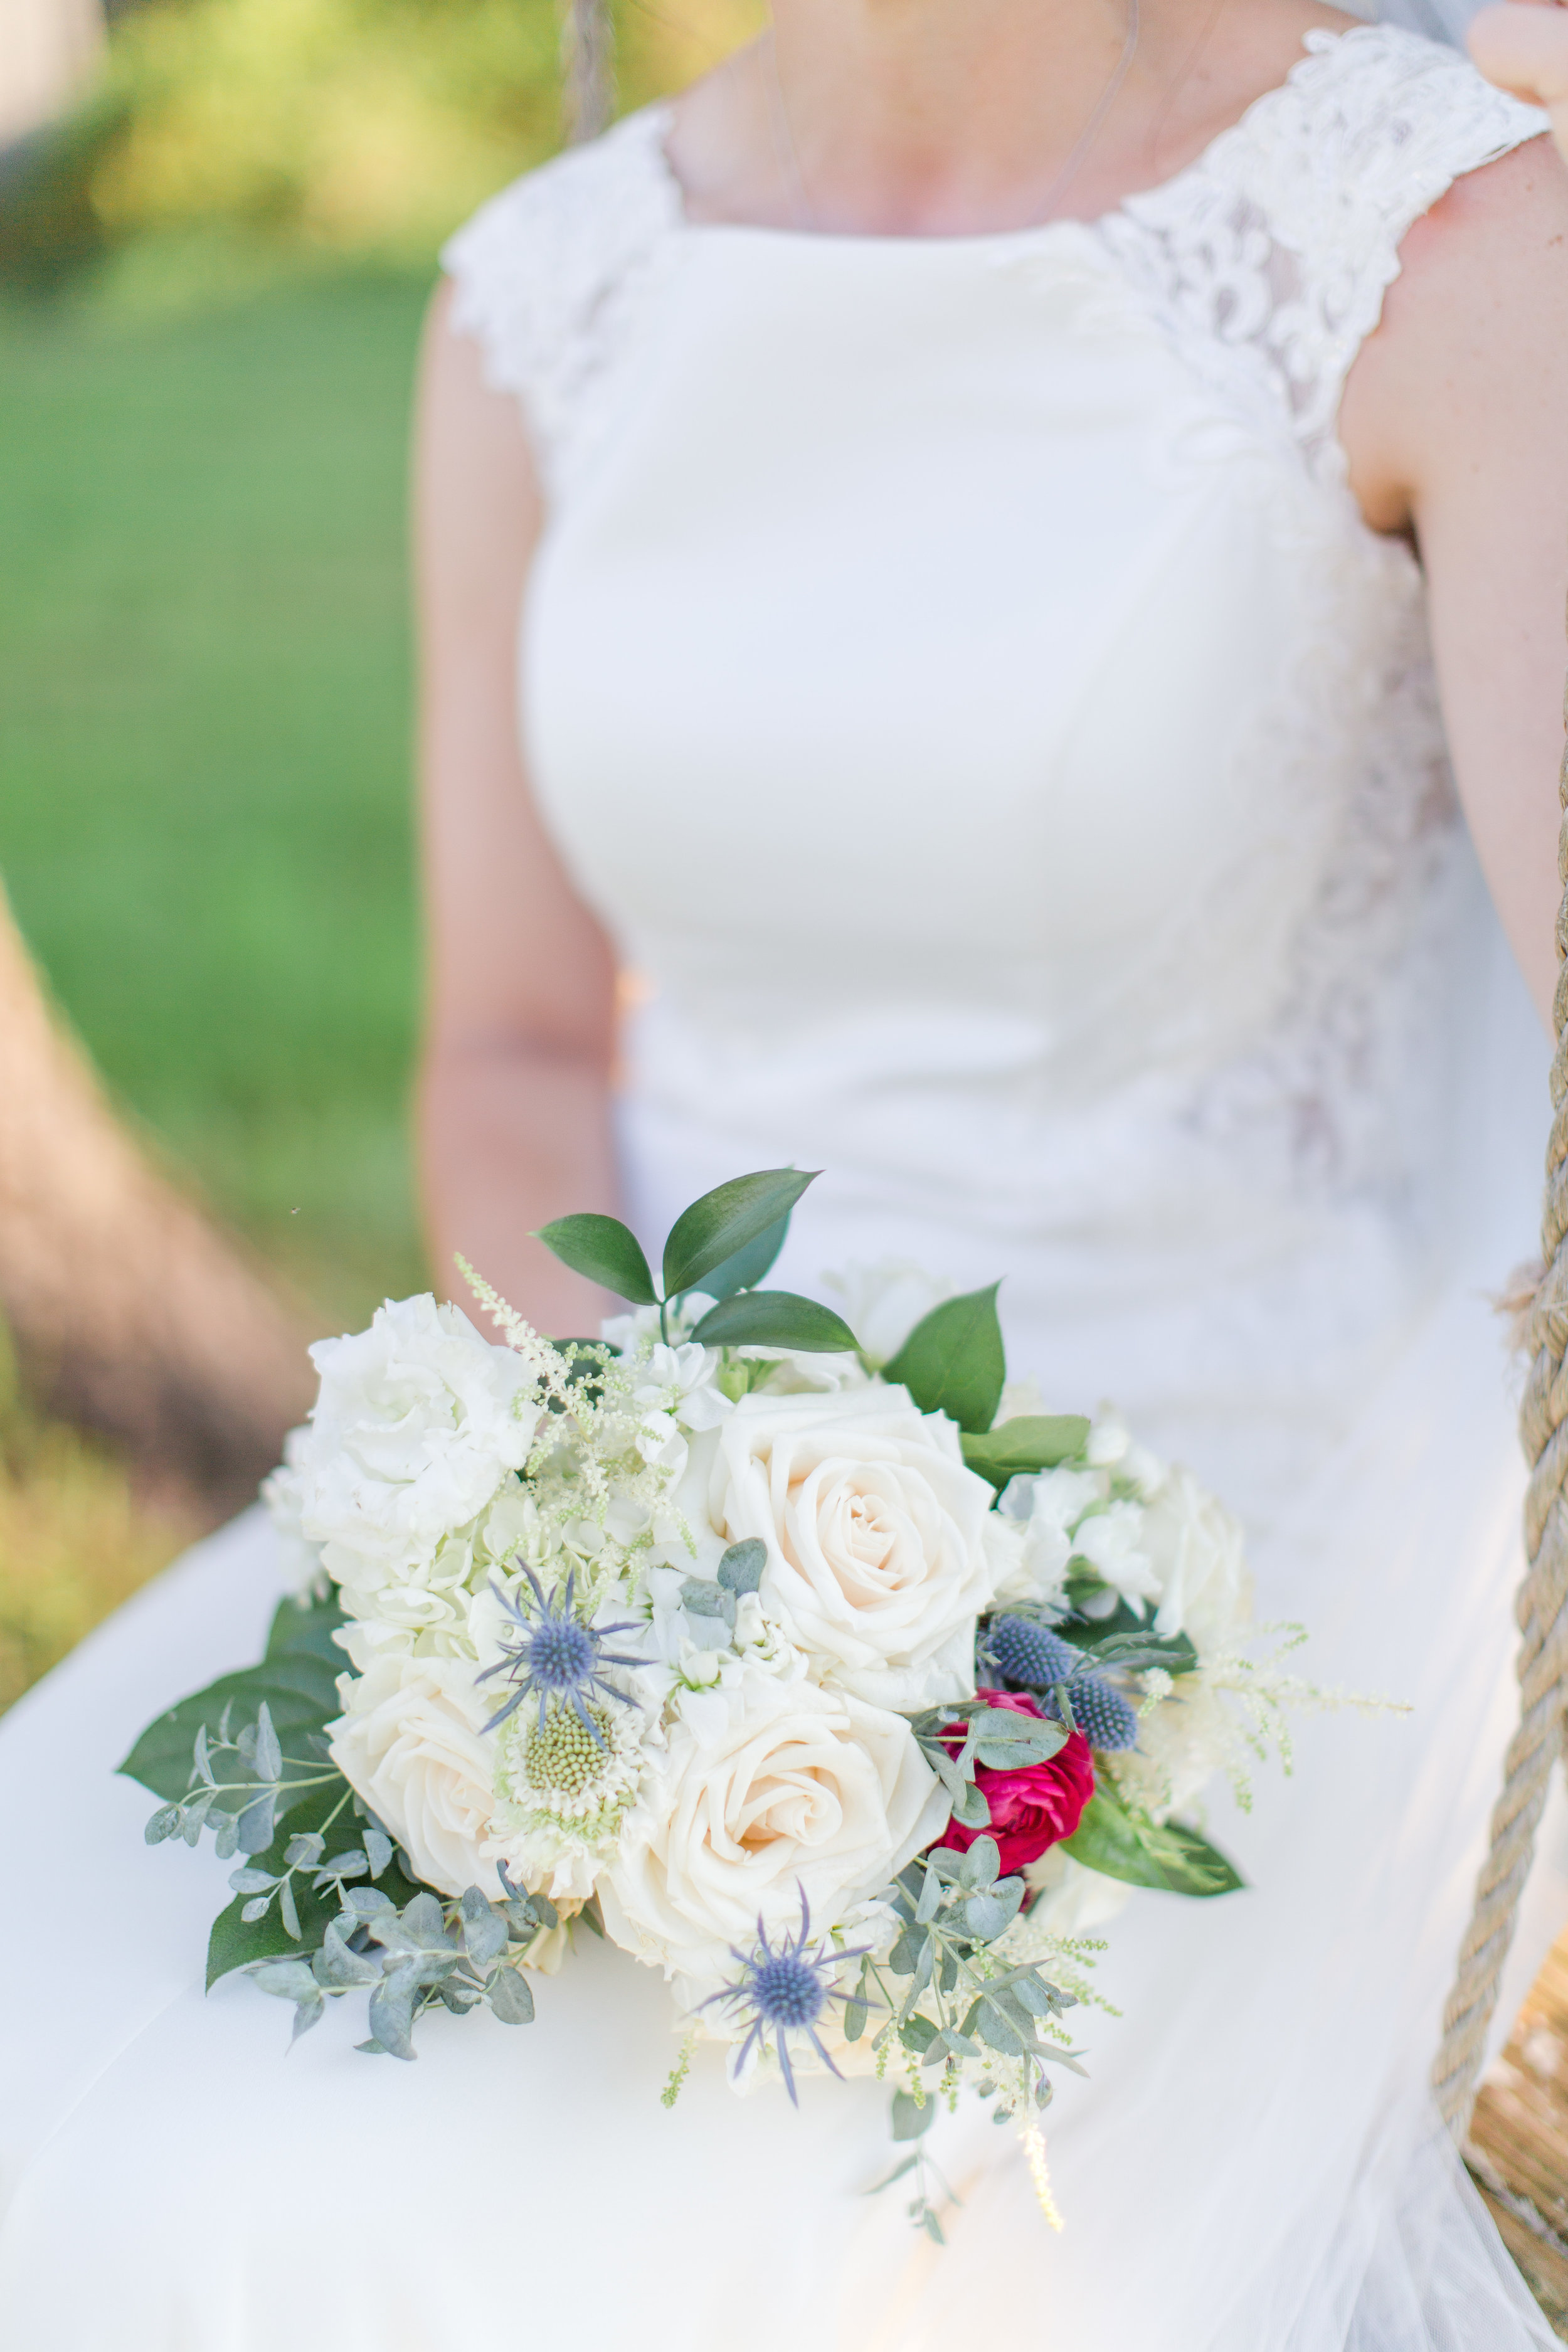 This bride requested just a touch of color for her bouquet. Venue  48 Fields  in Leesburg, VA, Emily Alyssa Photography